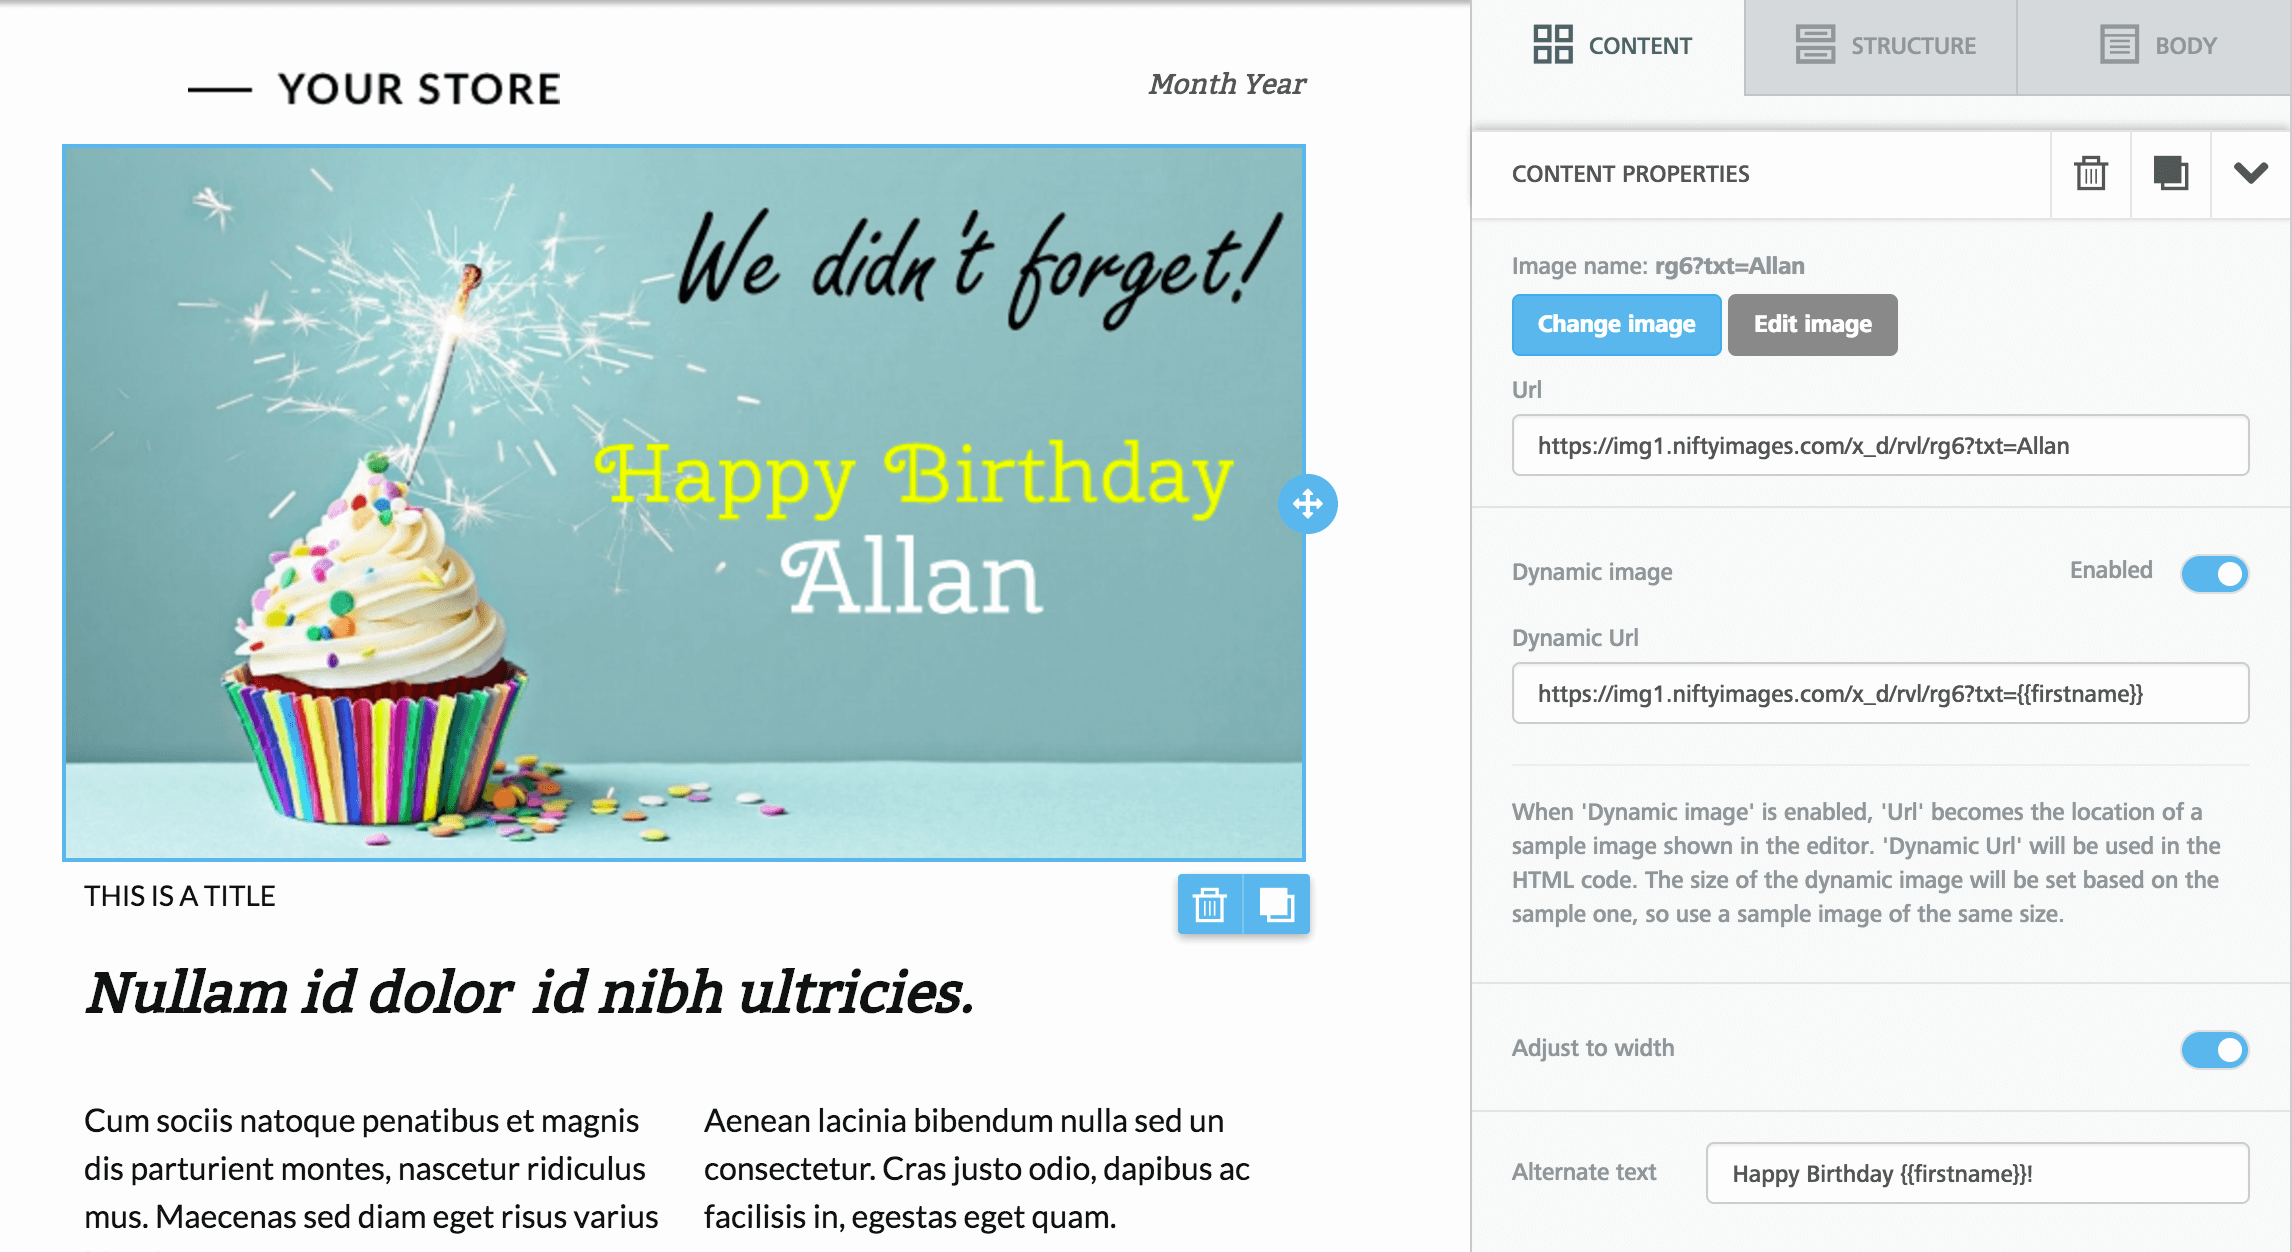 bee_dynamic_image_personalized_birthday_card.png